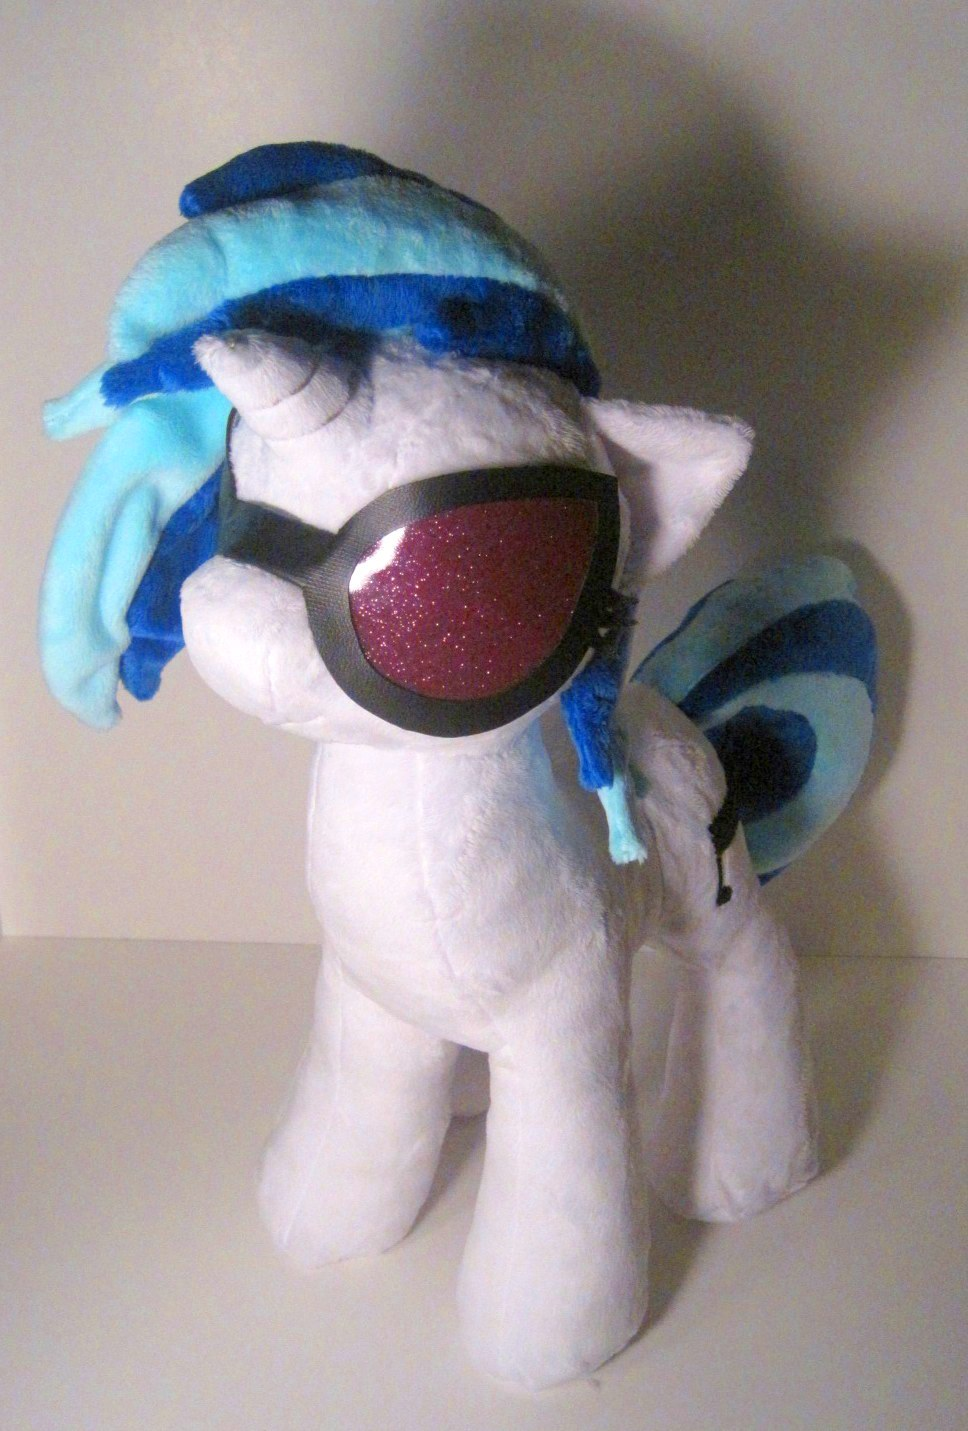 Vinyl Scratch v2.0 by FollyLolly